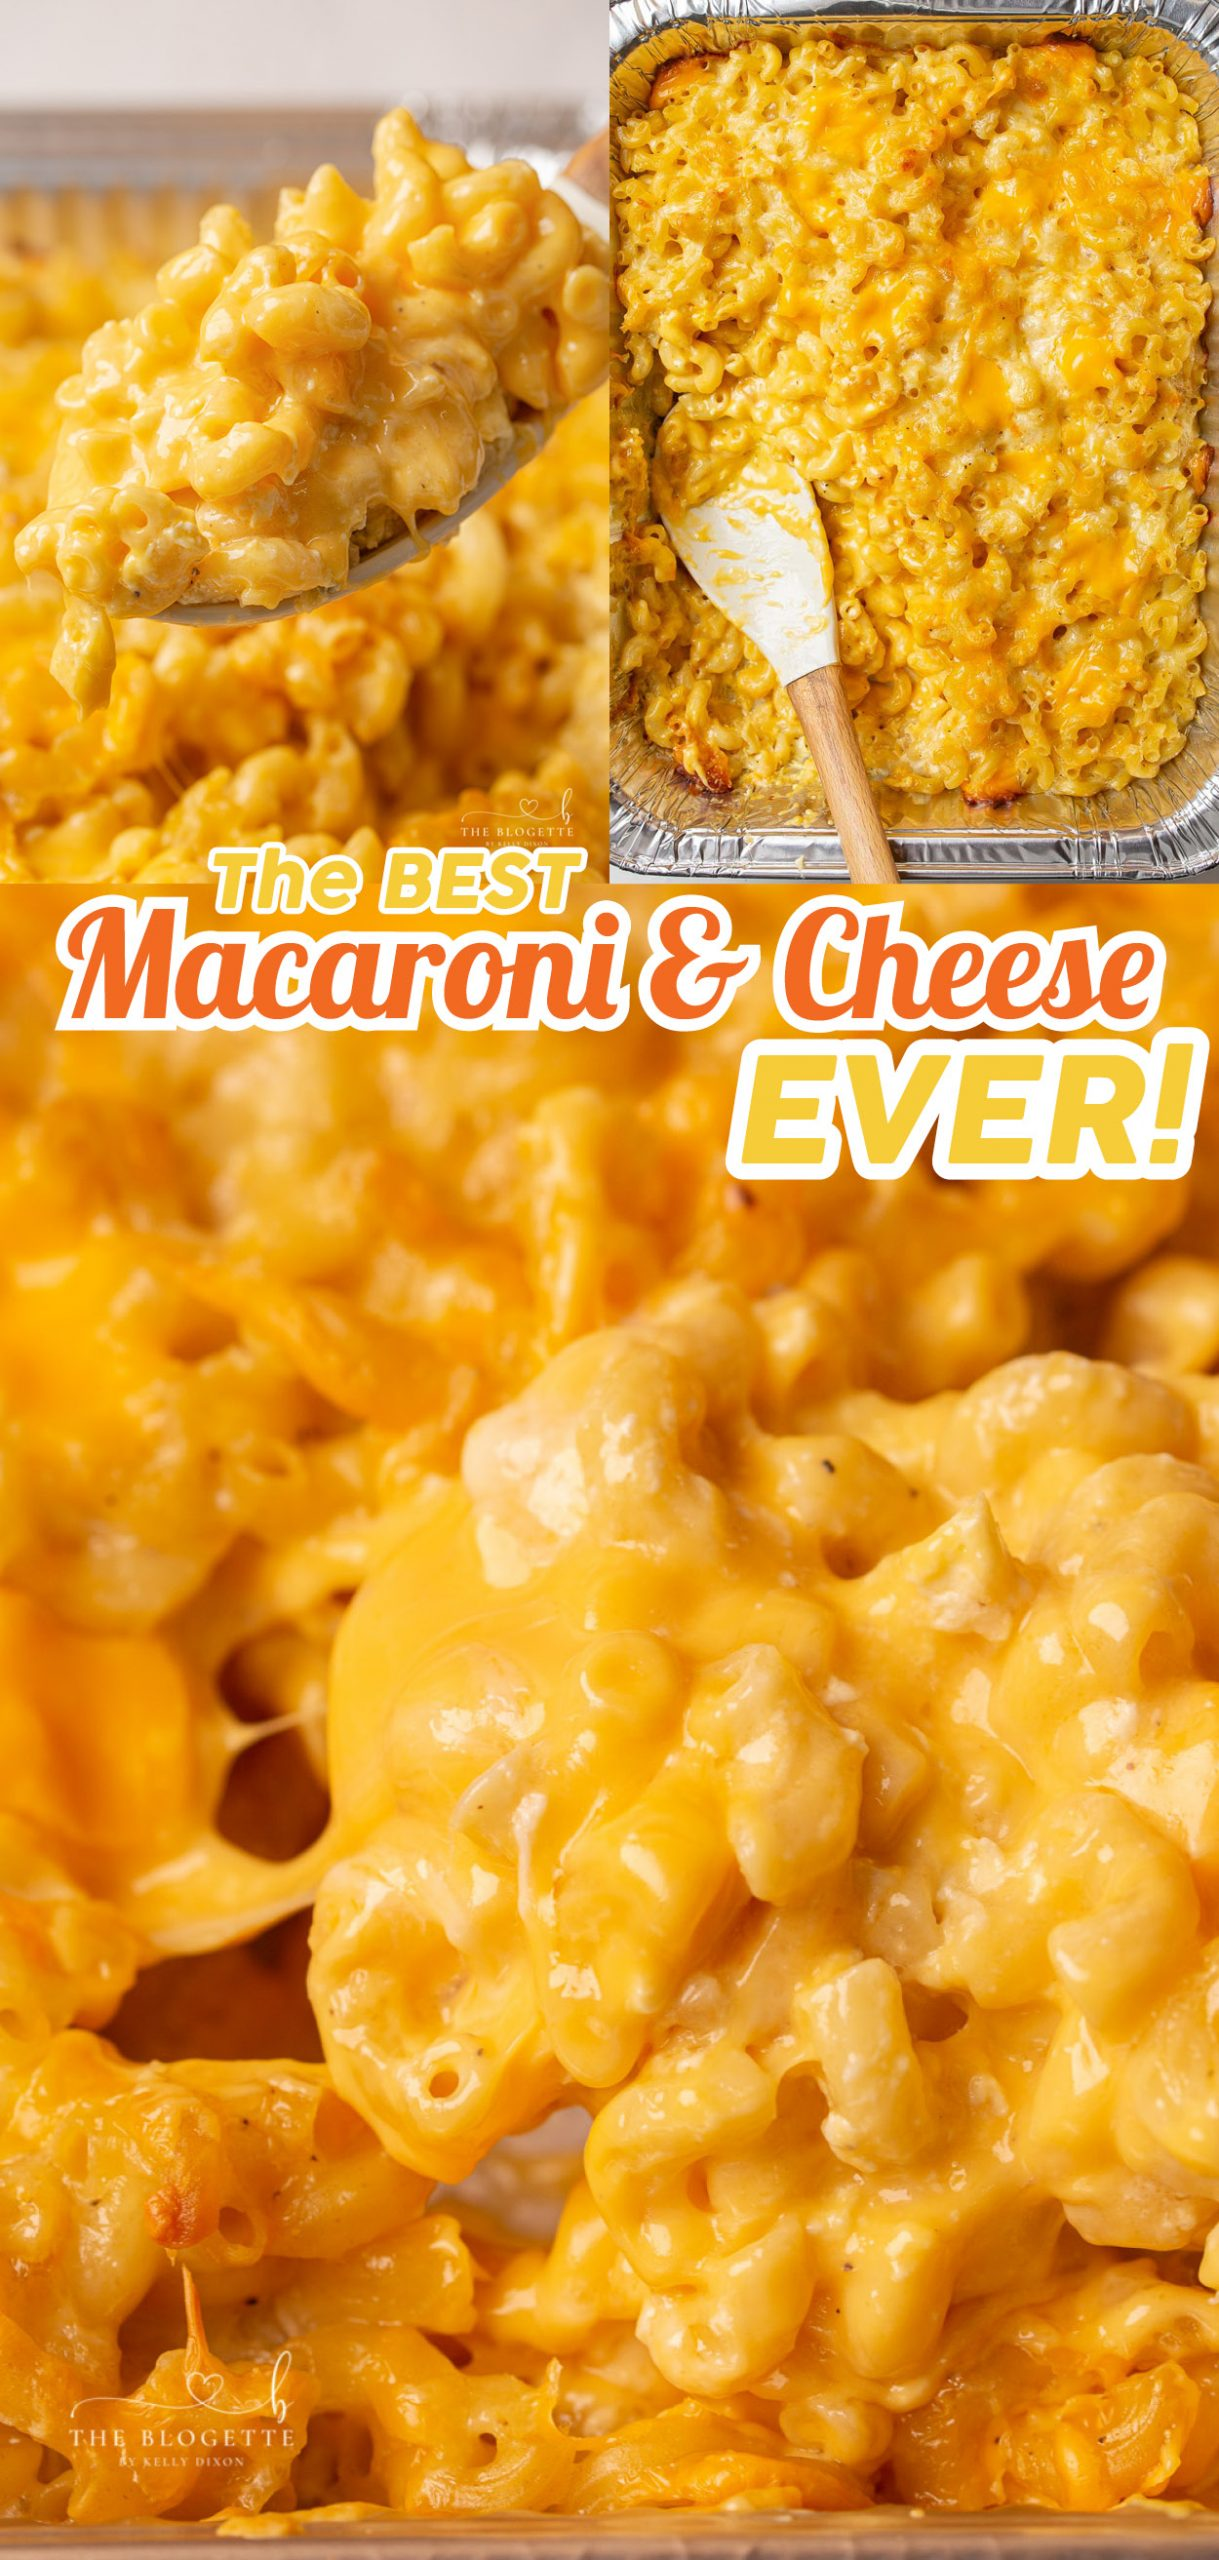 Absolutely perfect Baked Macaroni and Cheese recipe. Easy, delicious holiday or weeknight side dish that's the perfect amount of creamy.